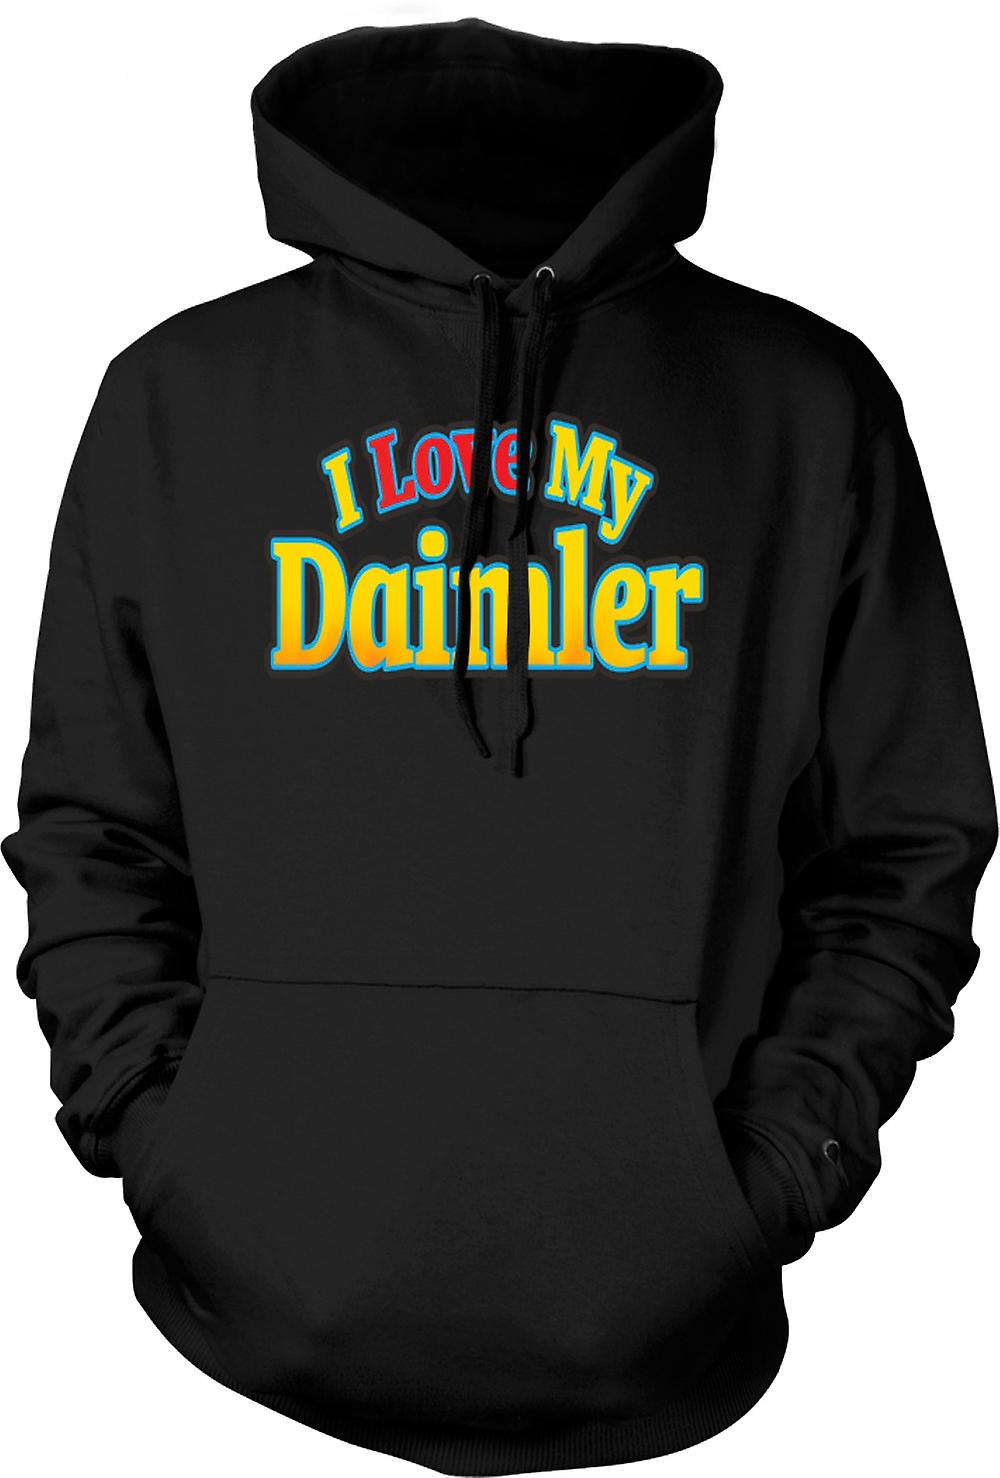 Mens Hoodie - I Love My Daimler - Car Enthusiast